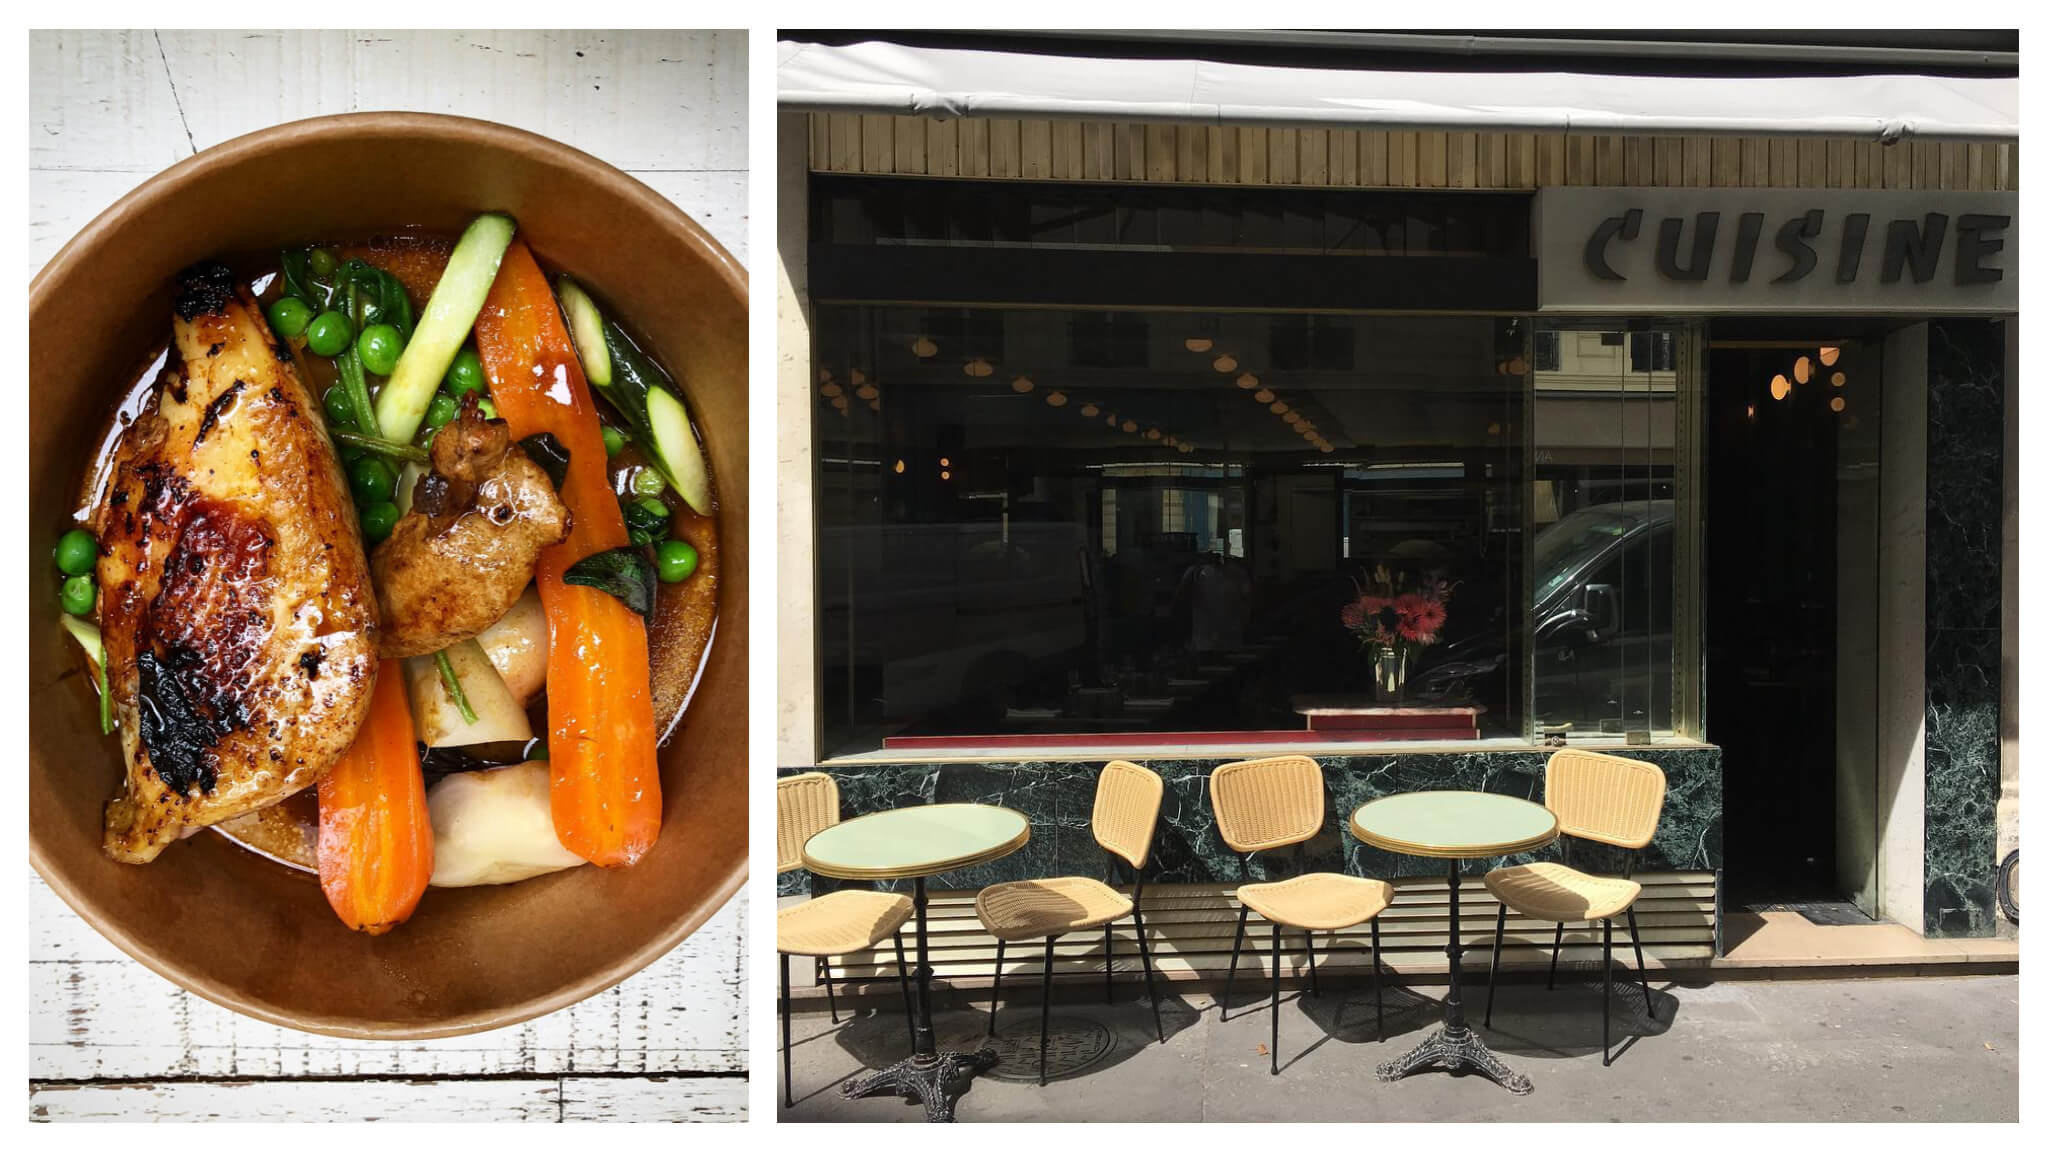 Left: a chicken and vegetable bowl from Les Enfants du Marché. Right: the terrace at Paris restaurant Cuisine.